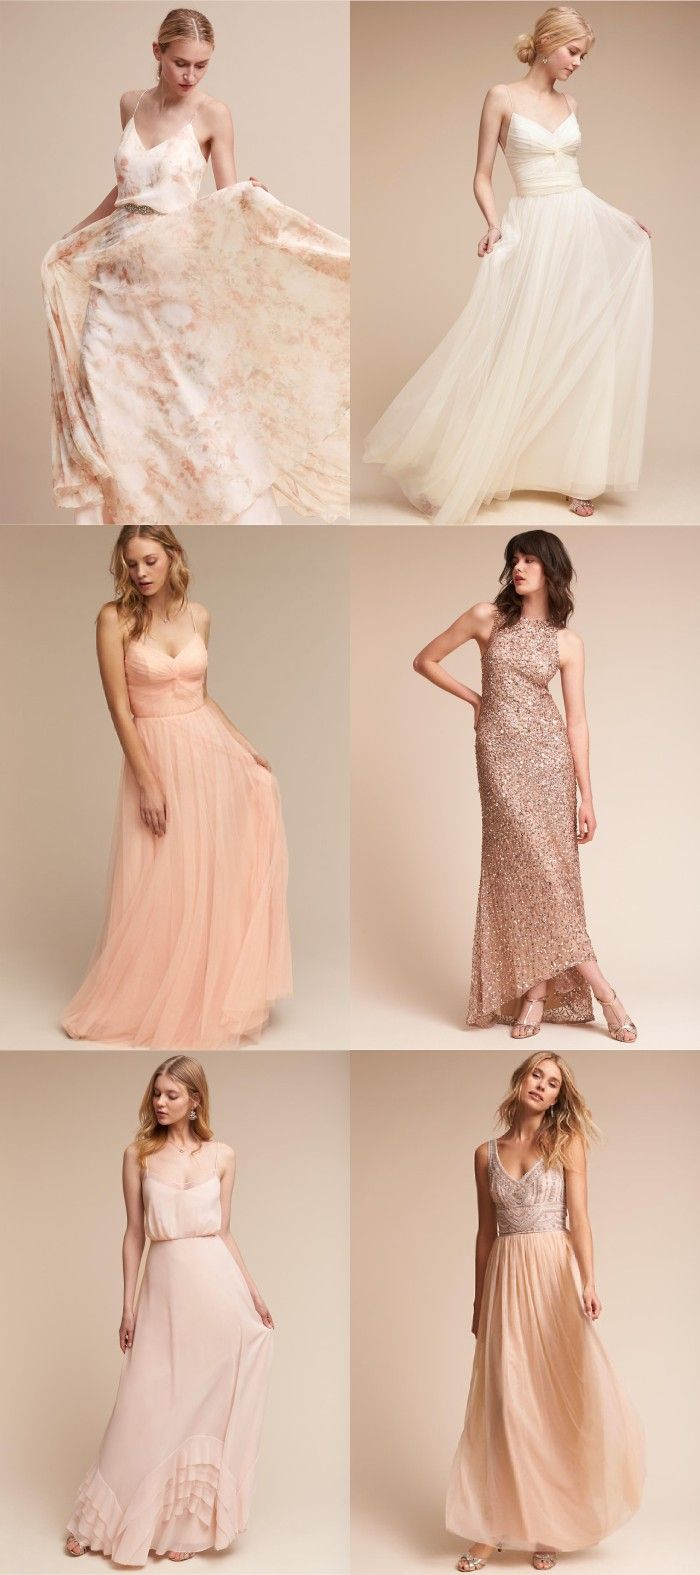 Floral, Peach, Blush and Cream Bridesmaid Dresses to Mix and Match